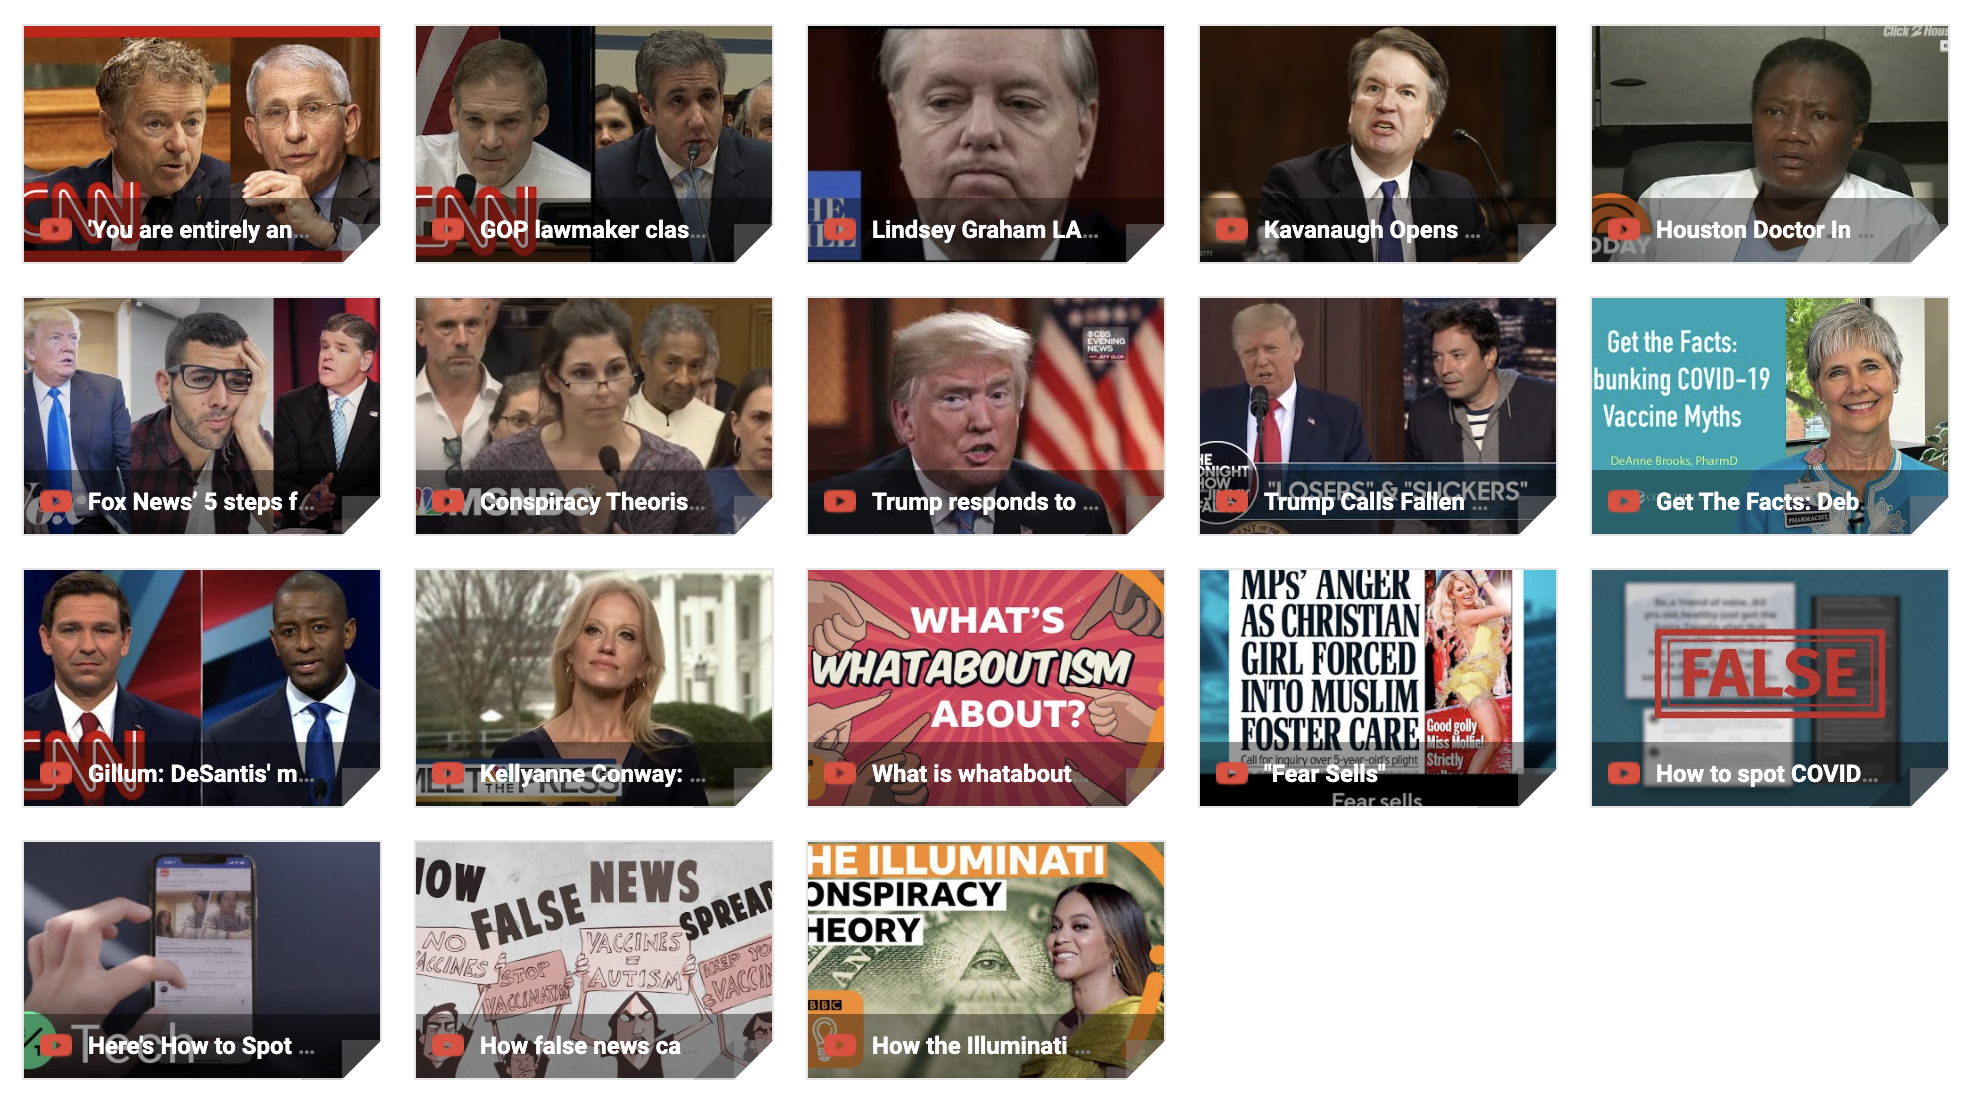 Video examples of how to spot and counter misinformation and disinformation